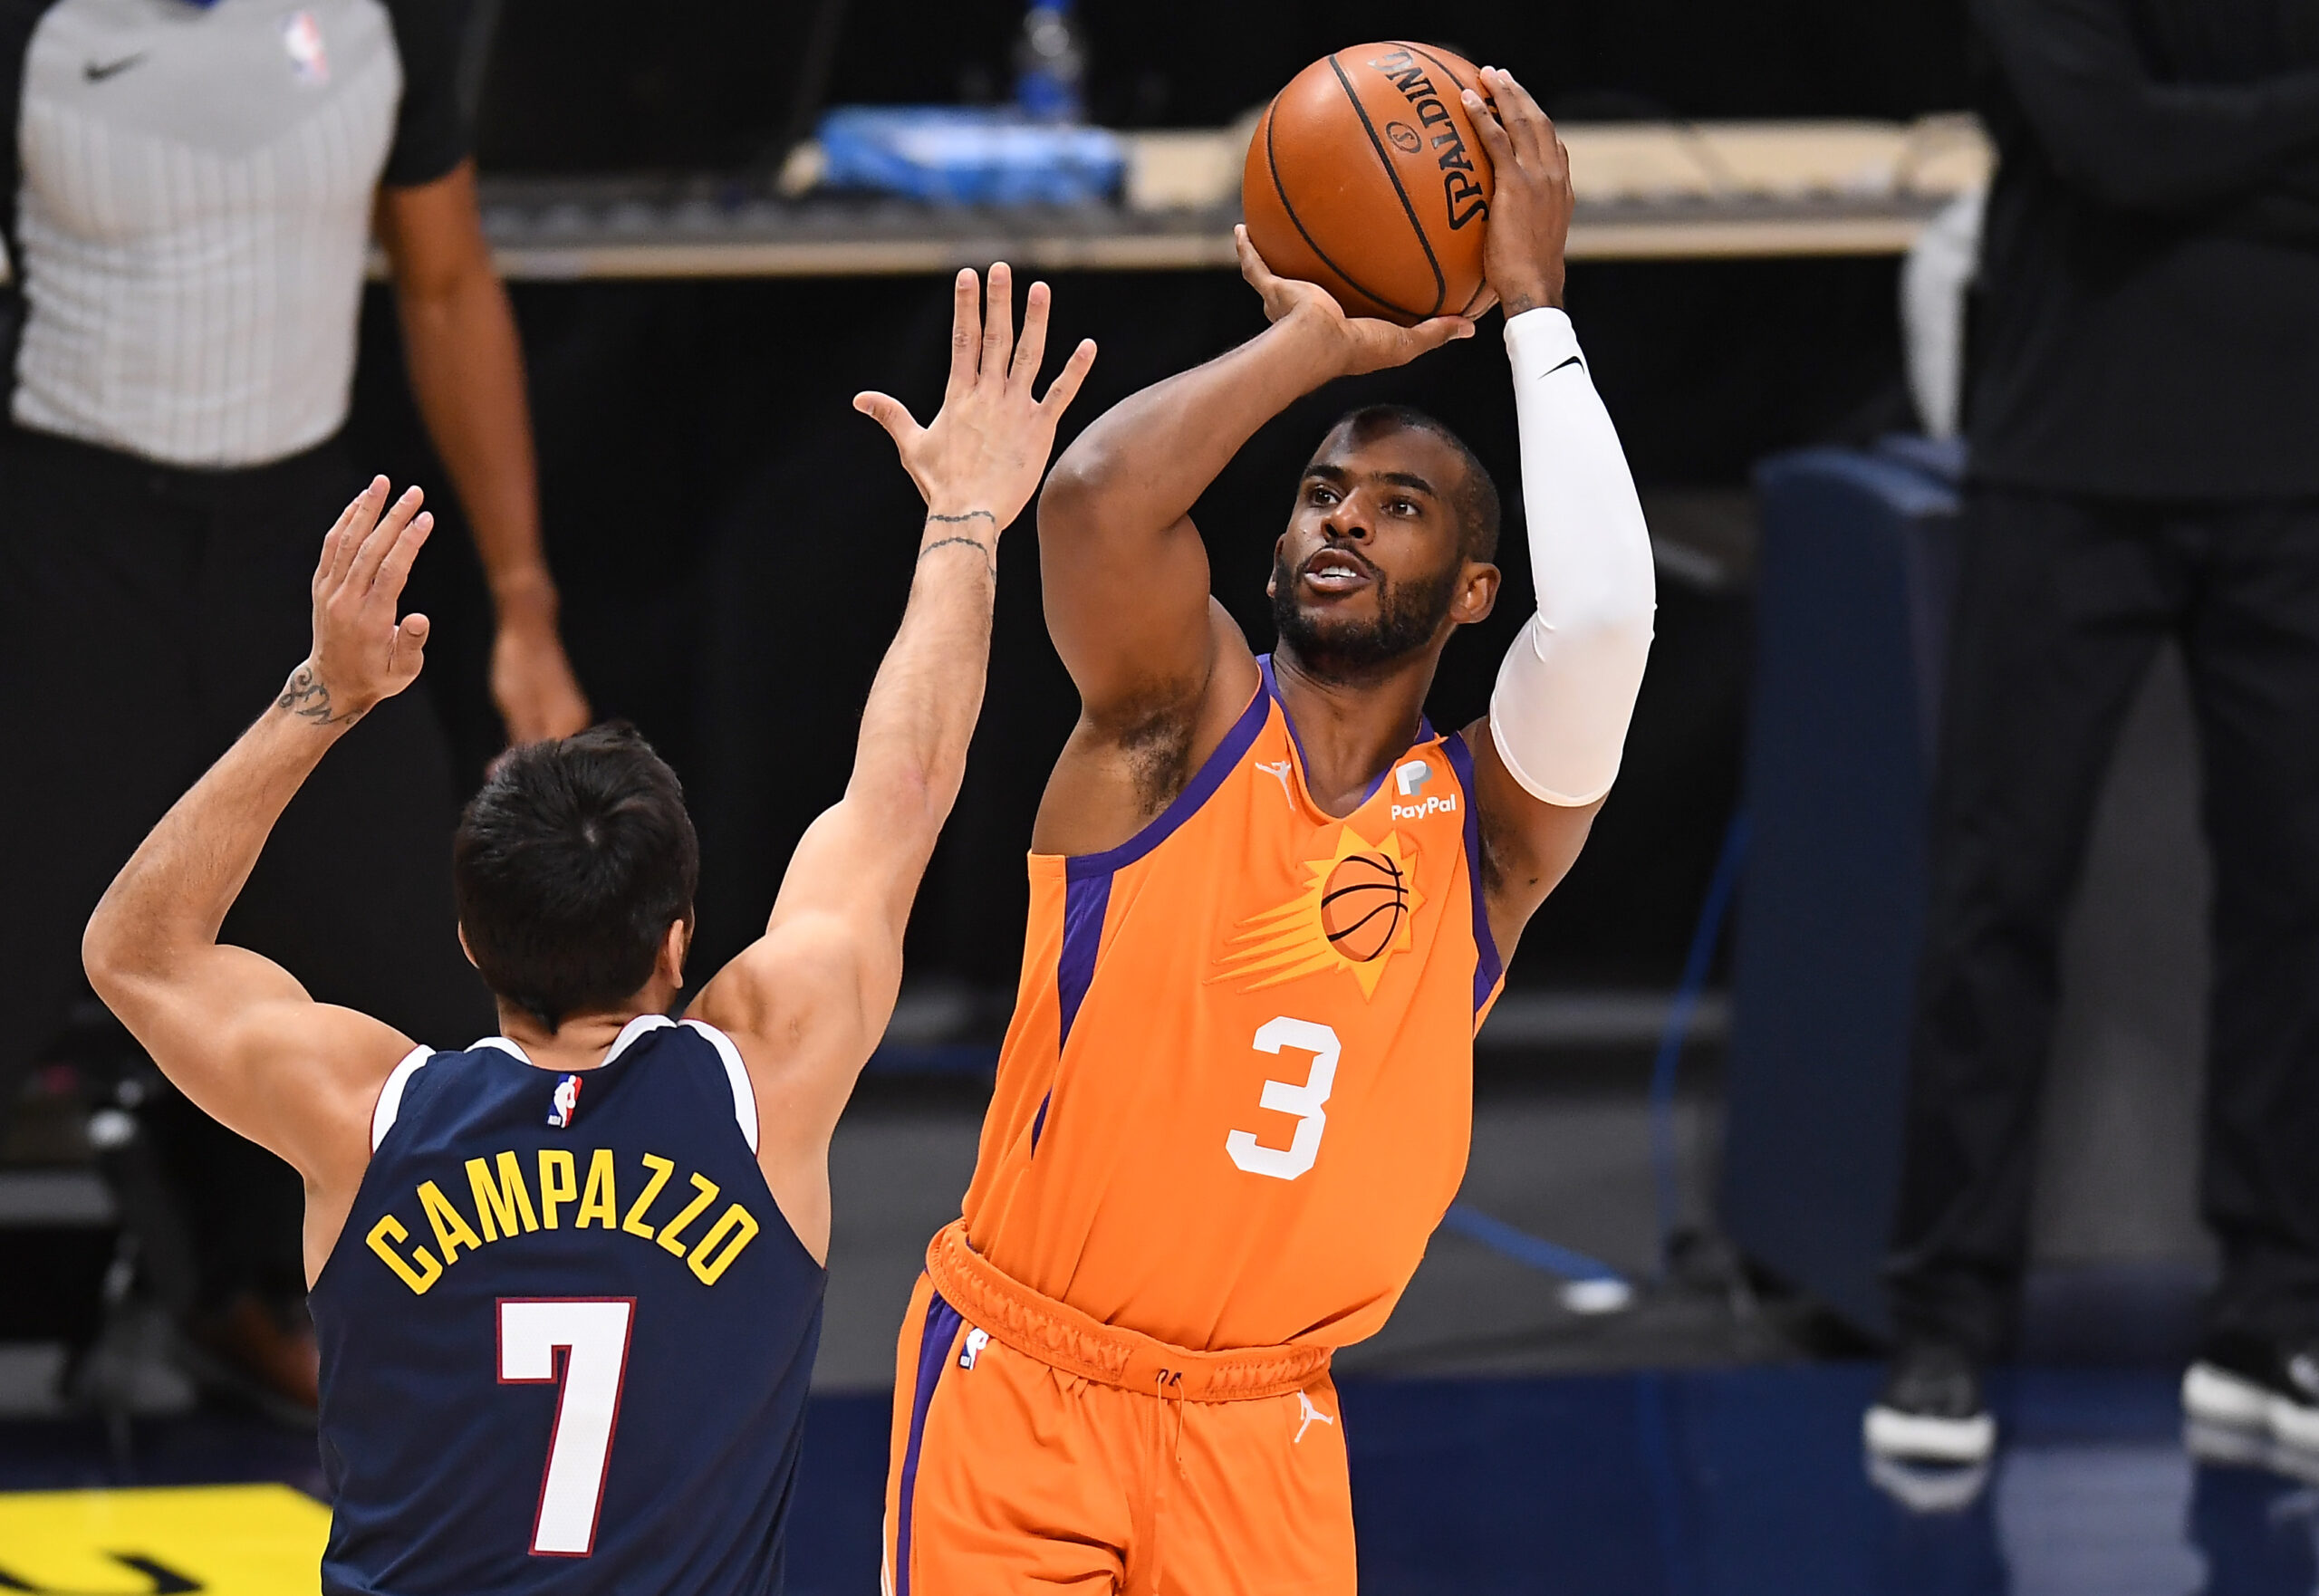 Chris Paul's play, presence commanding West-leading Suns